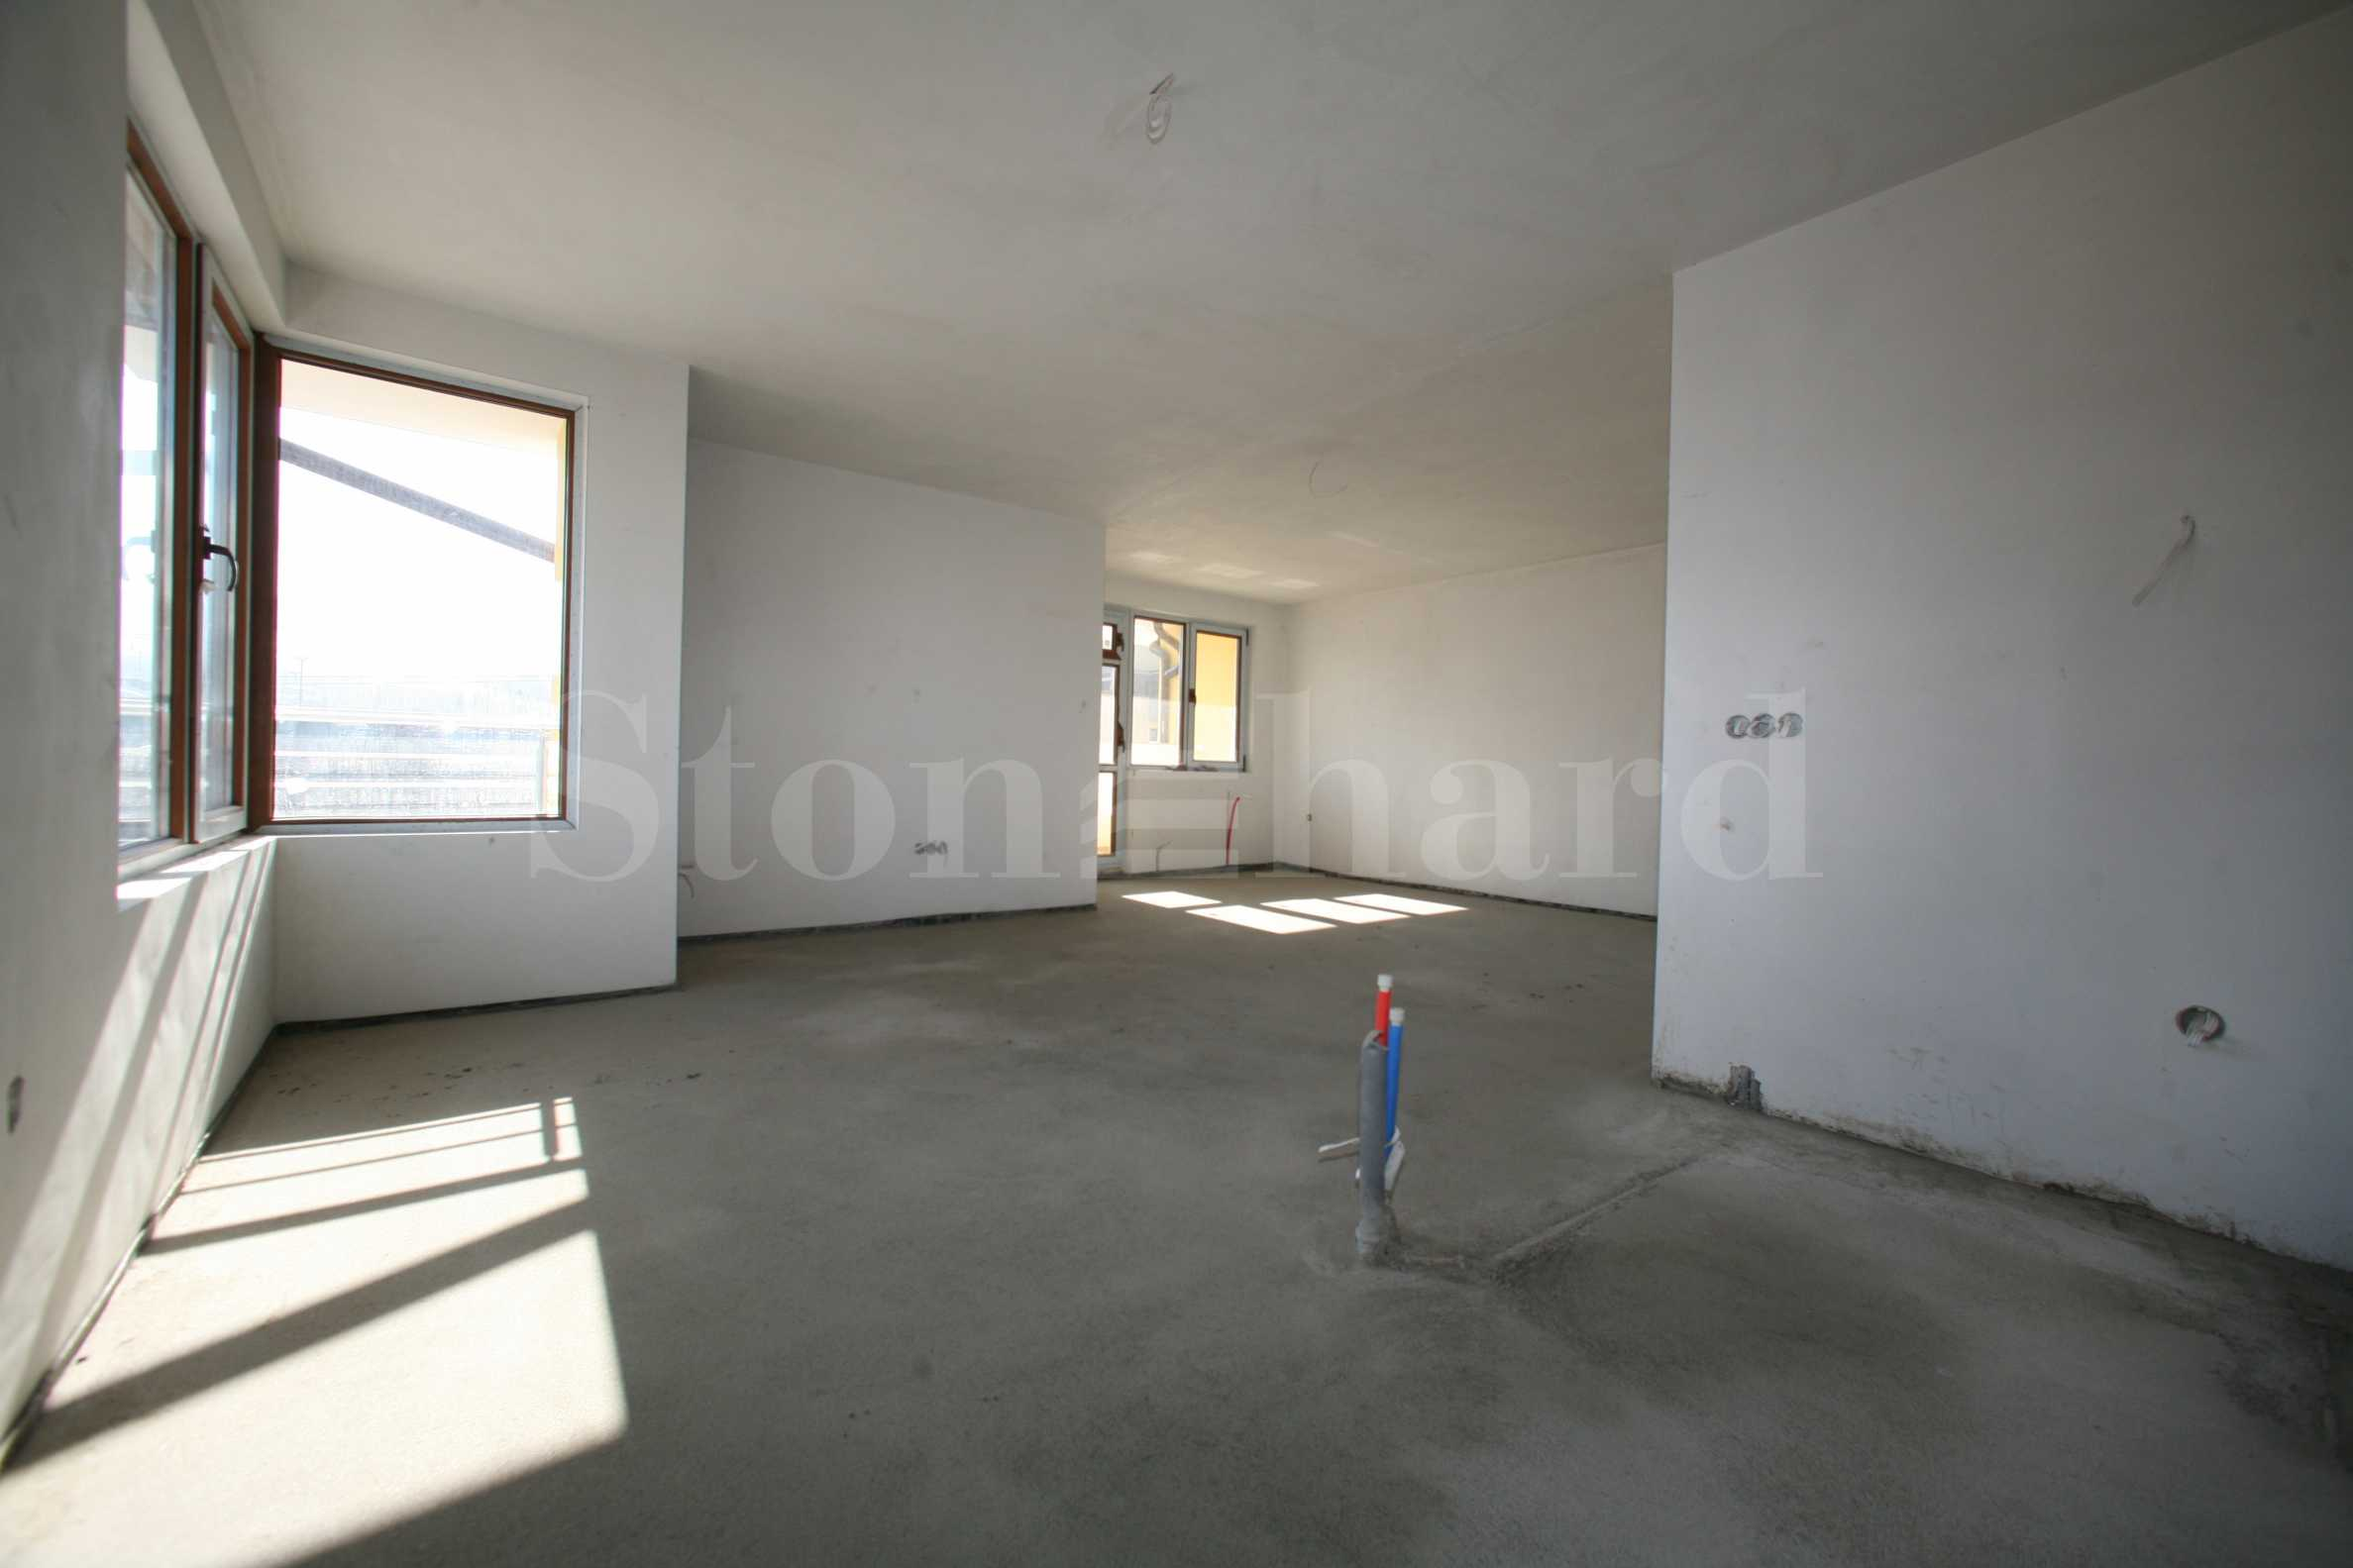 Newly-built apartments with starting price of 700 Euro/sq.m. in a gated complex opposite Boyana Residence2 - Stonehard